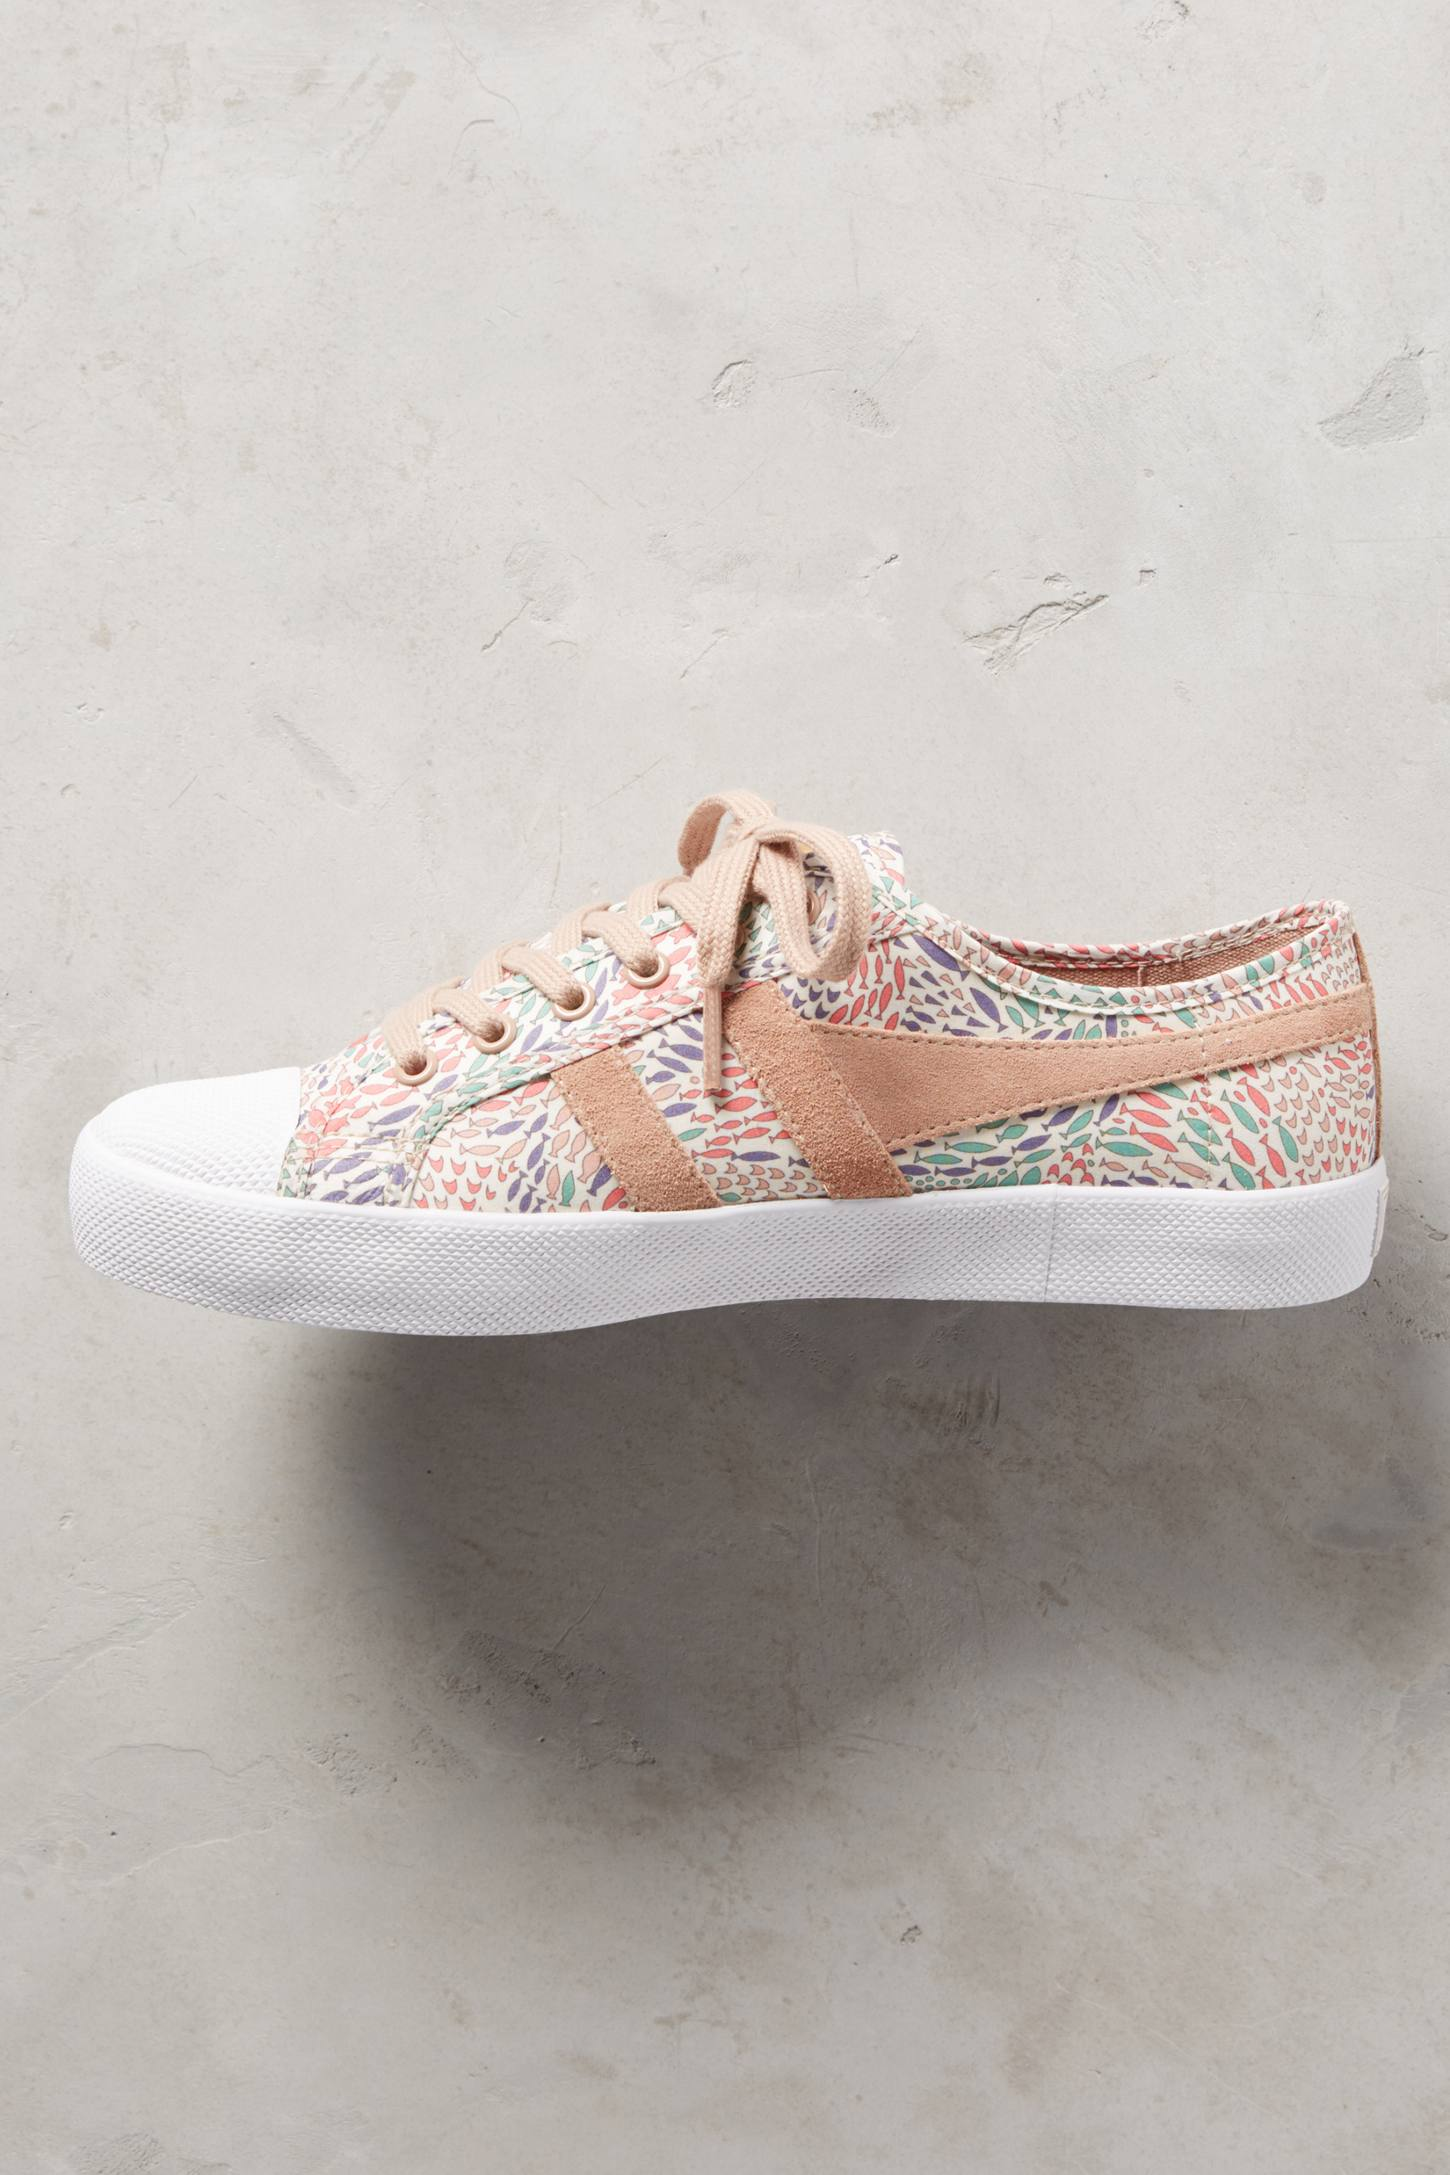 Slide View: 3: Gola x Liberty Coaster Sneakers